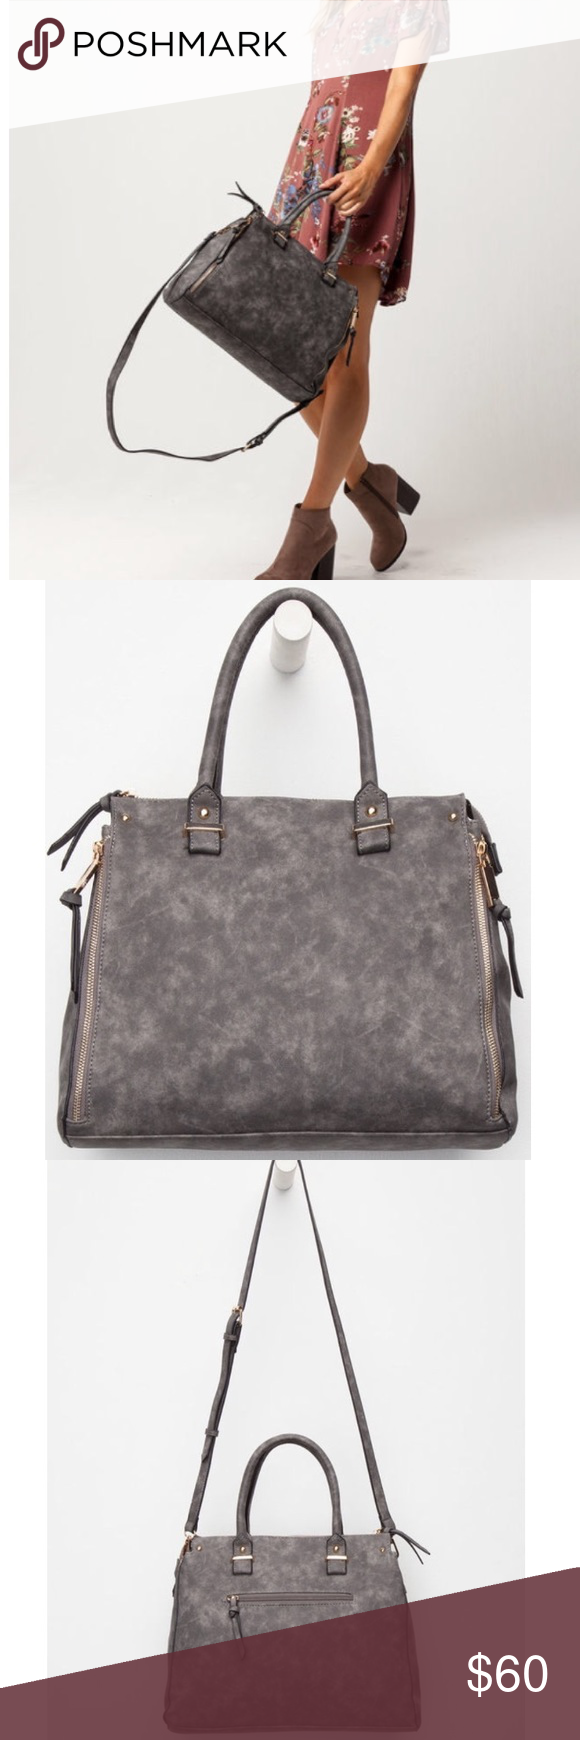 8a667f9f2d95 Free People Danica Tote Bag Free People line Violet Ray Danica tote bag. Faux  leather